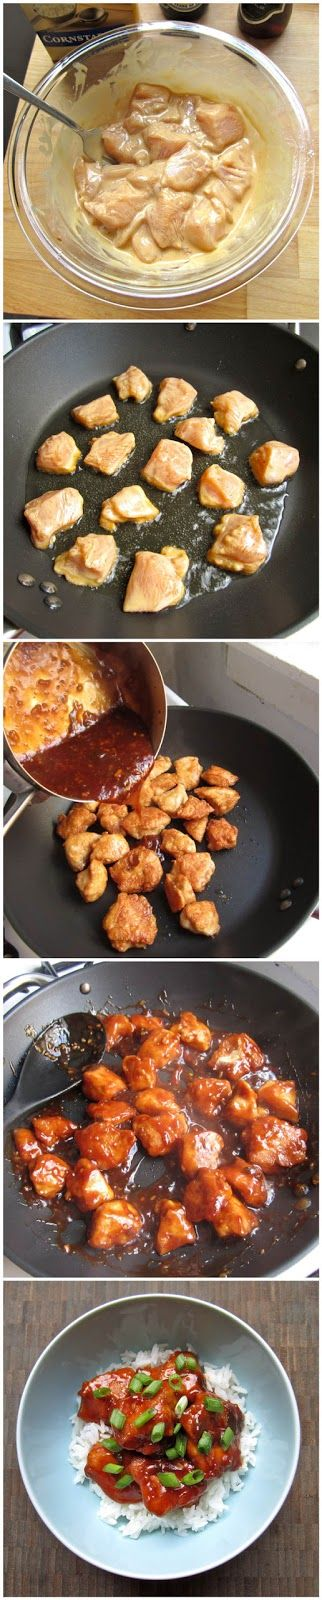 general tso's chicken. This was a great alternative to take-out and I preferred the ratio of chicken to breading a lot more. Leaves your kitchen smelling like a Chinese restaurant but well worth it!